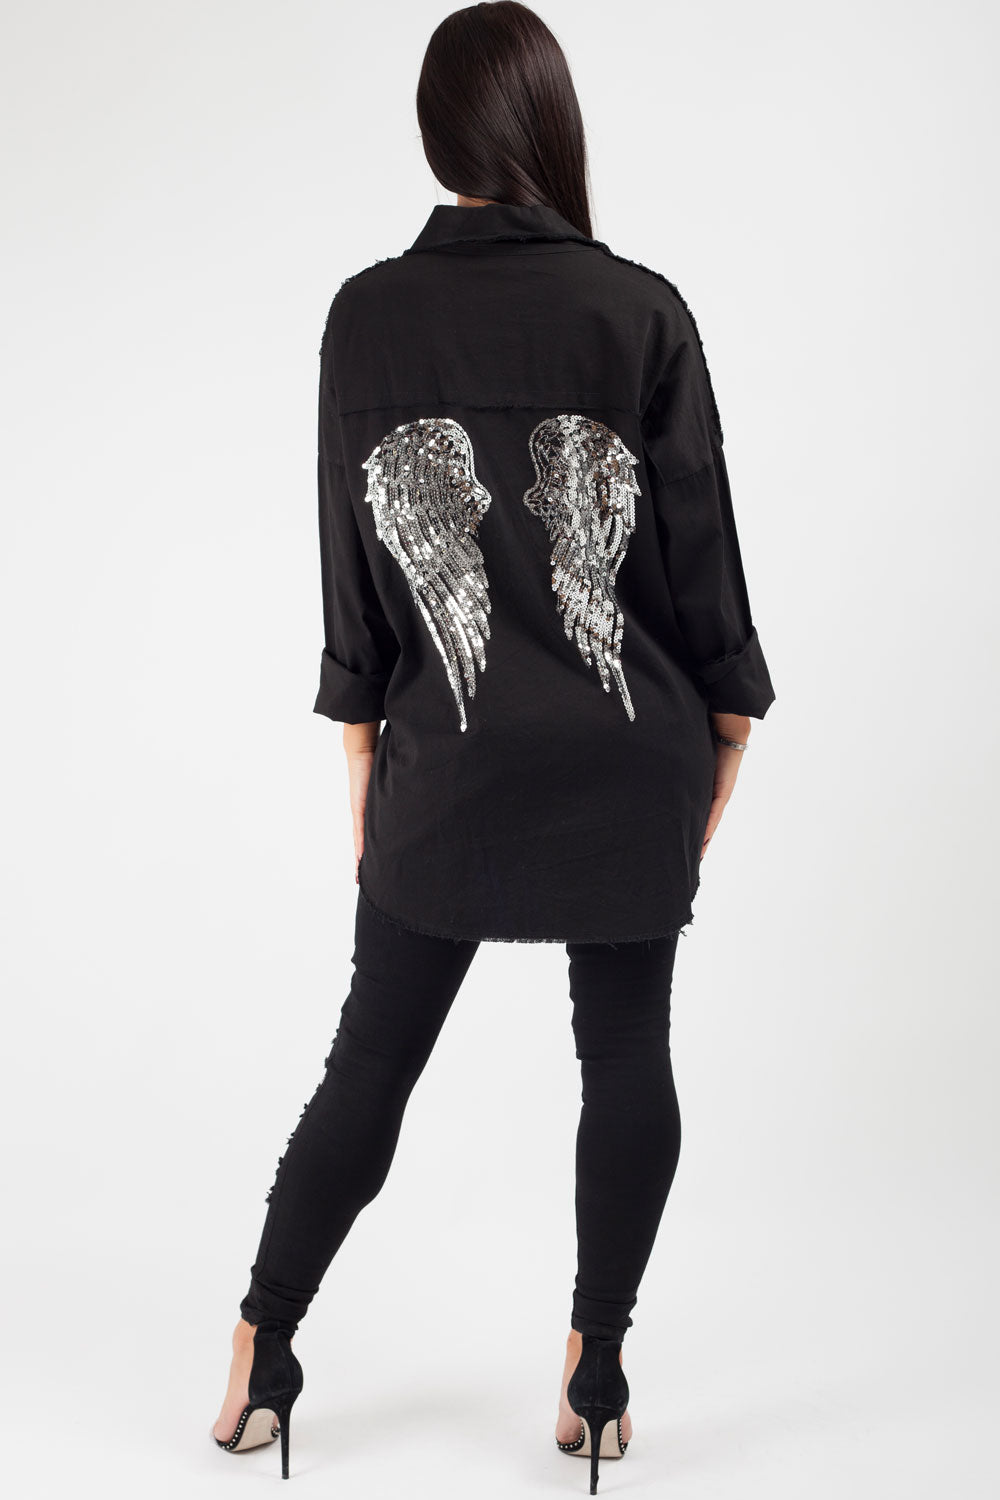 angel wings denim shirt black